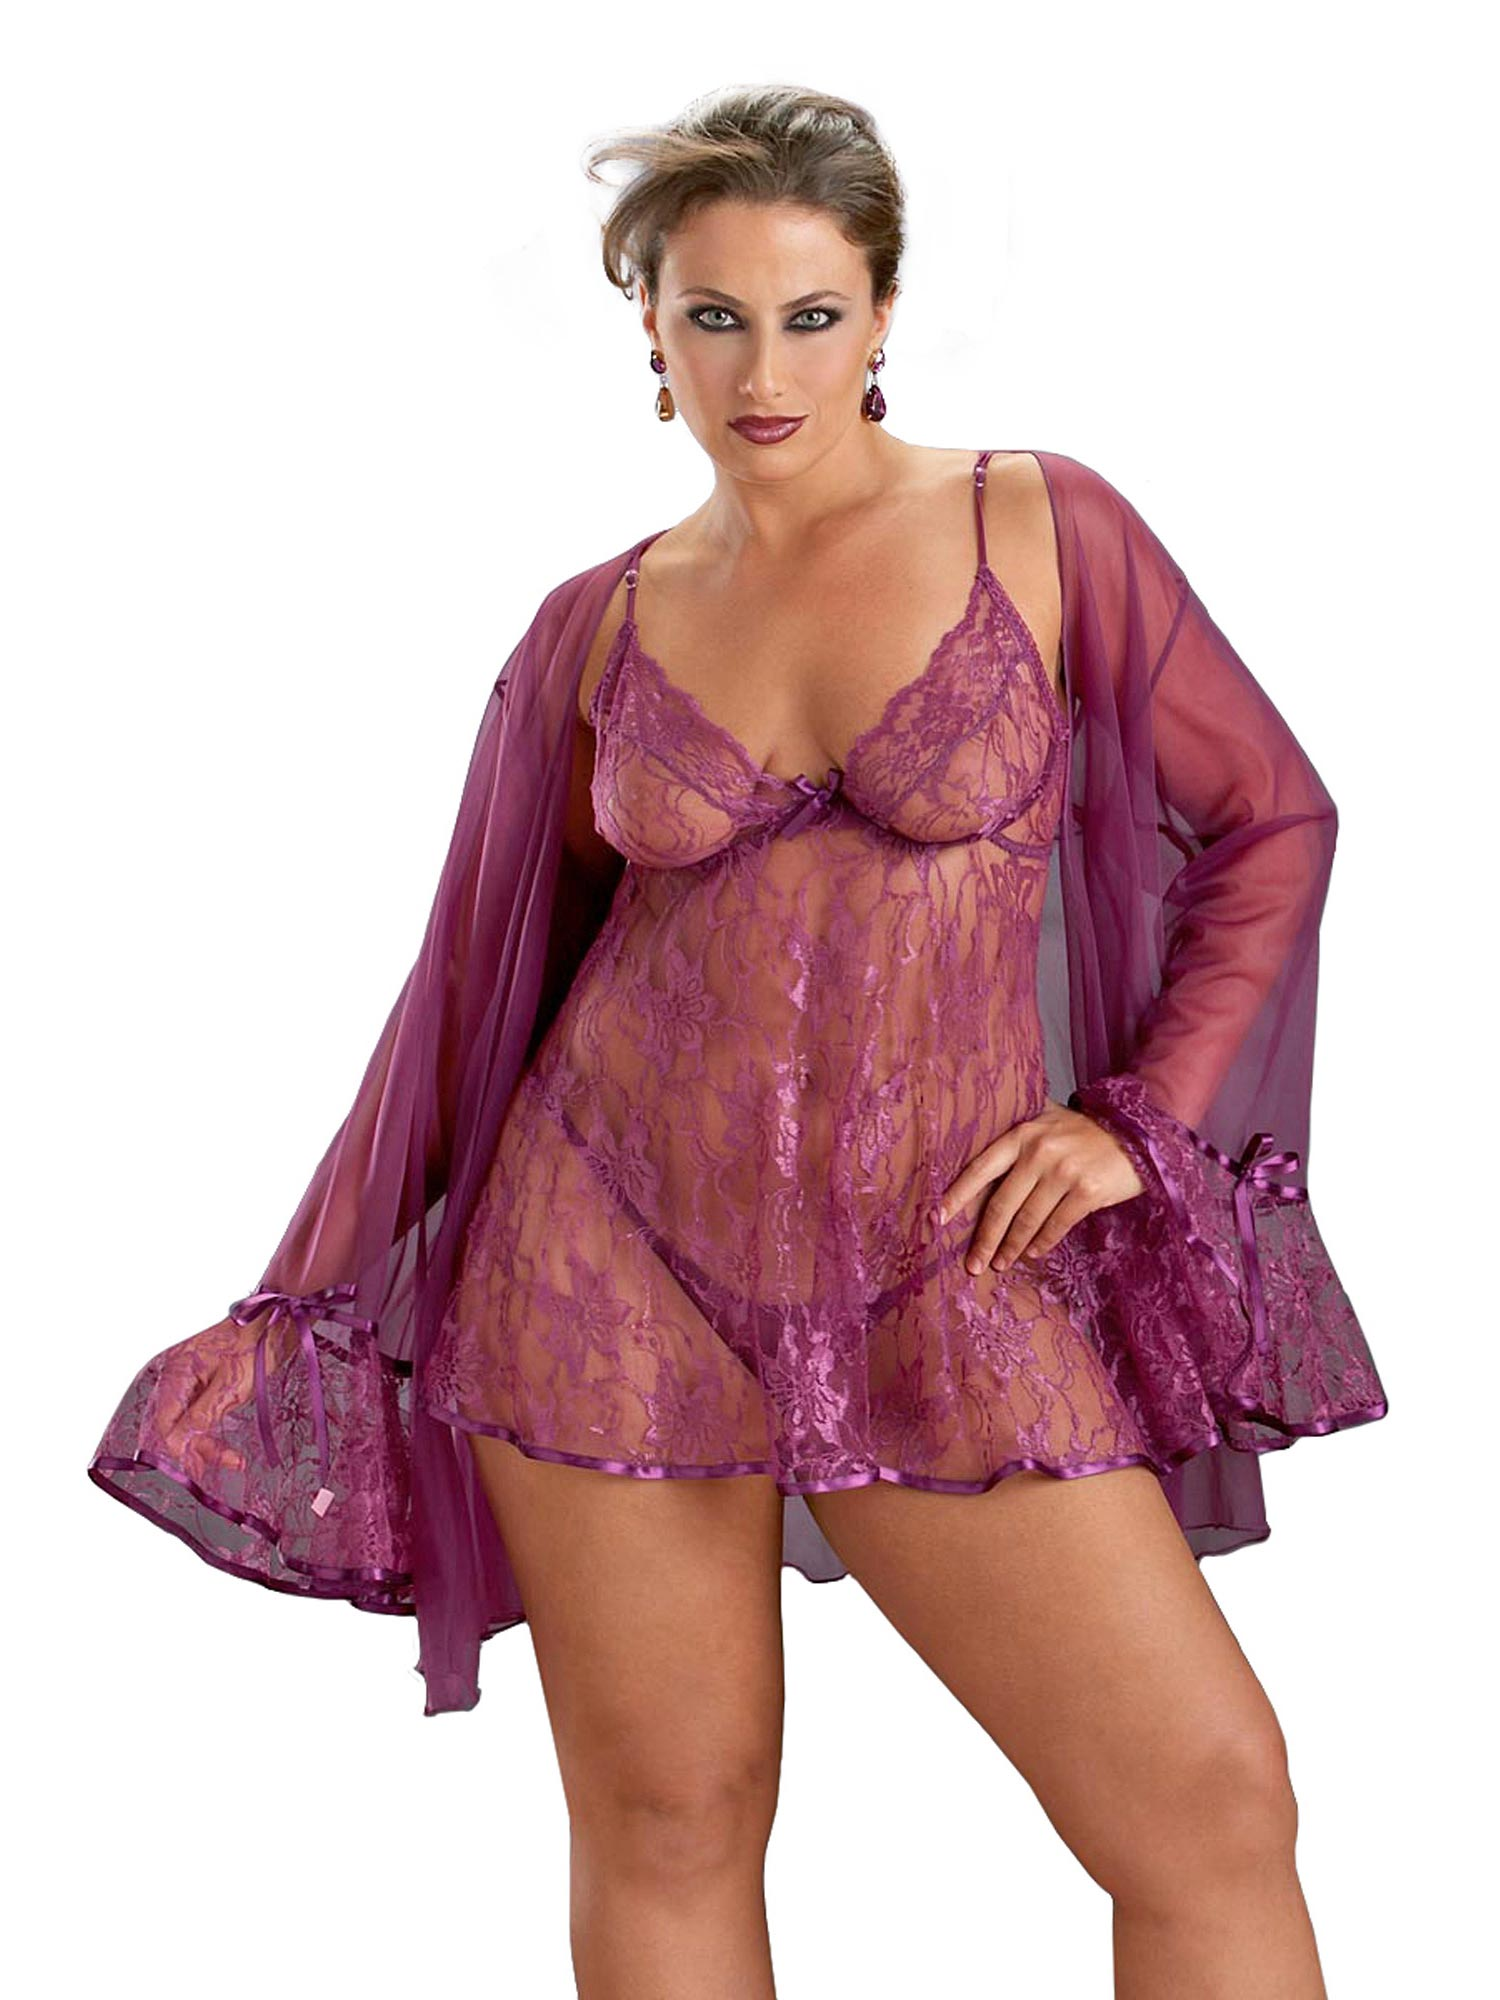 Full Figured Plus Size Lingerie Sexy Princess Lace Babydoll Set | eBay